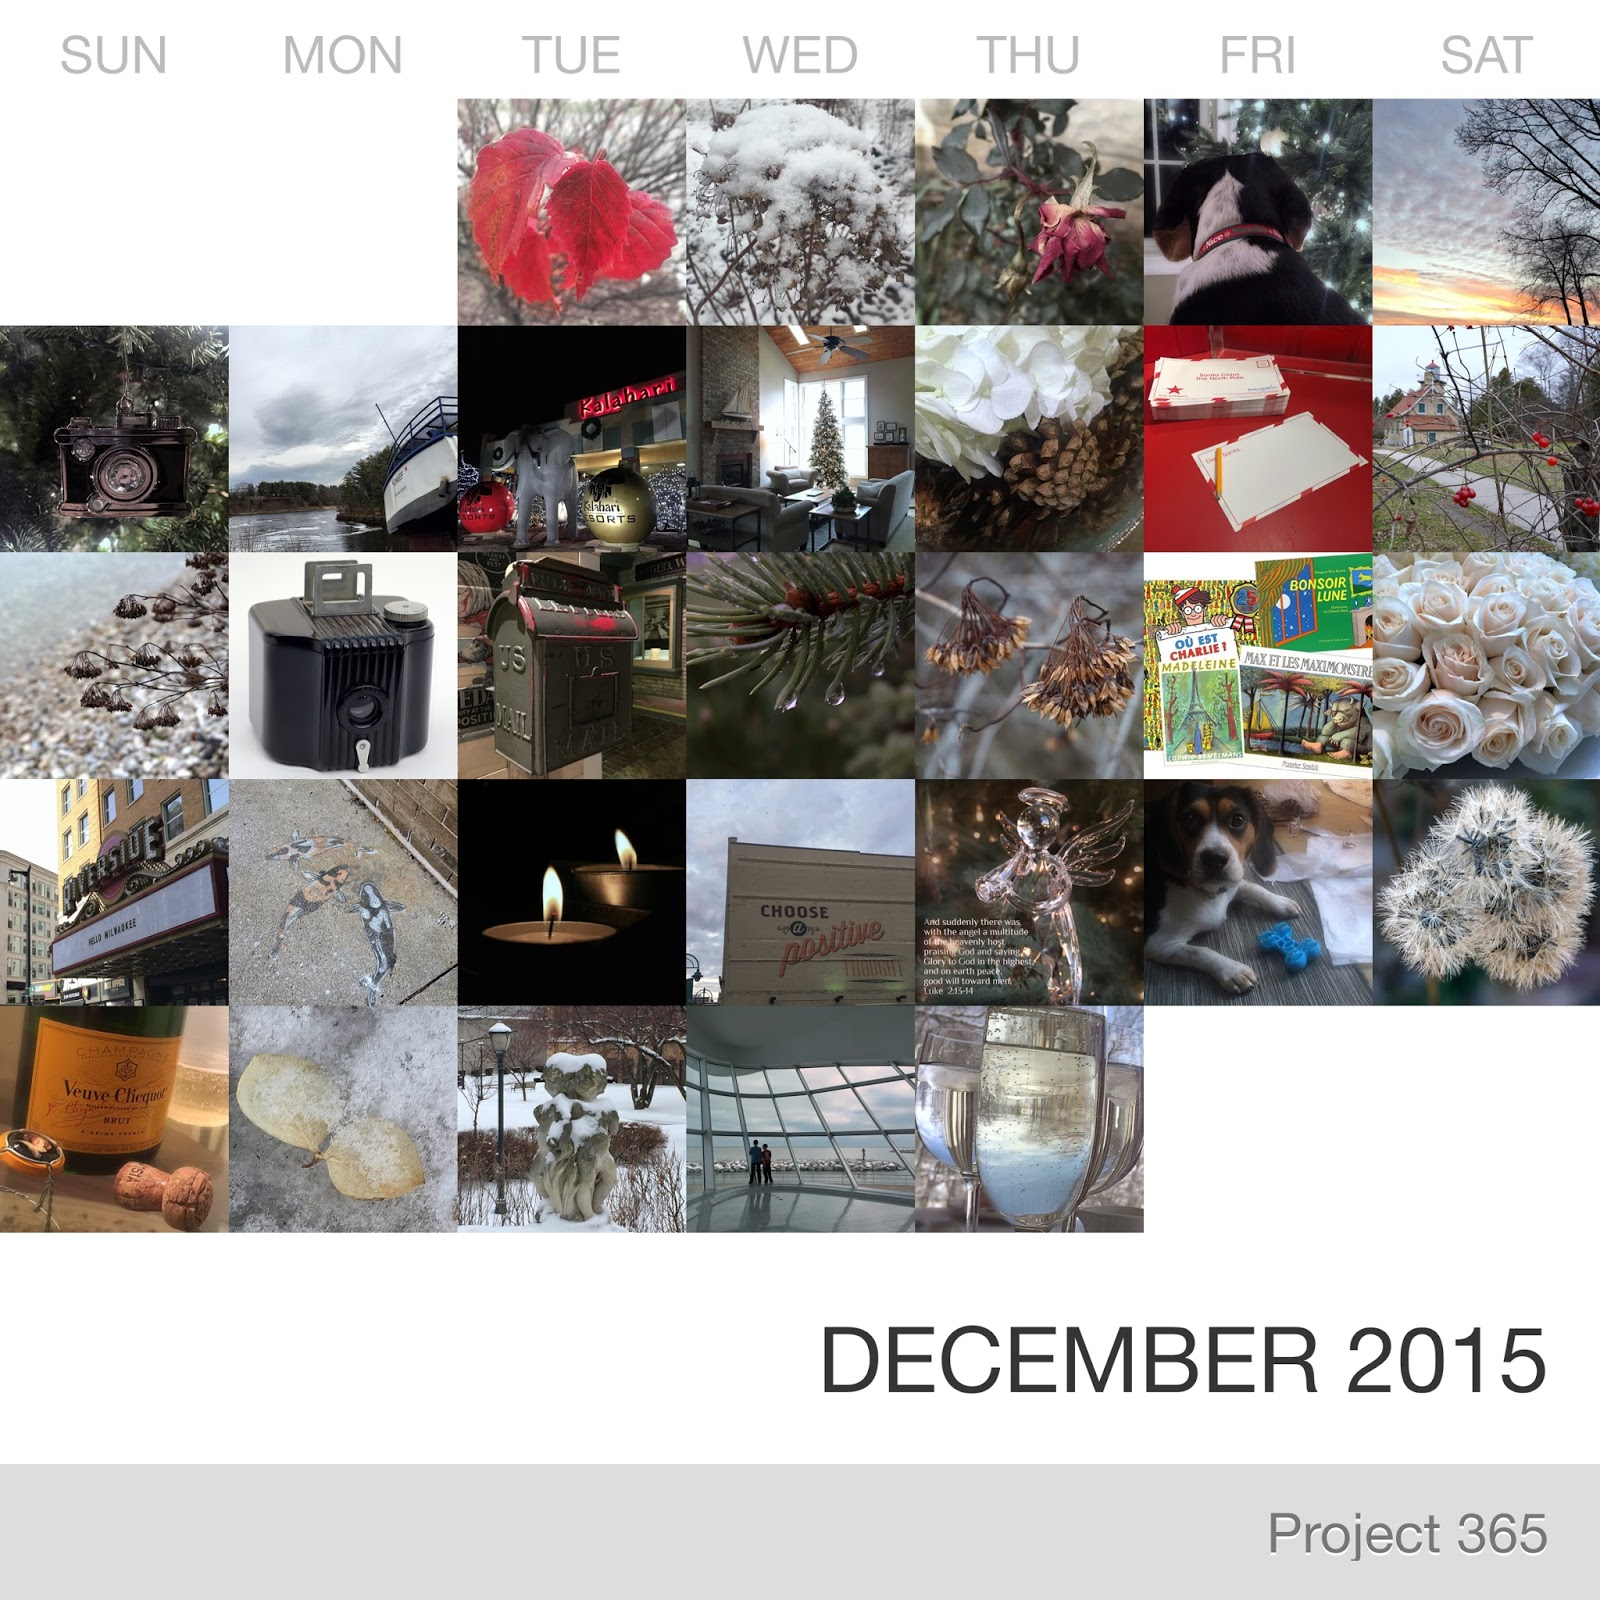 Project 365 _December-2015_Collage.jpg